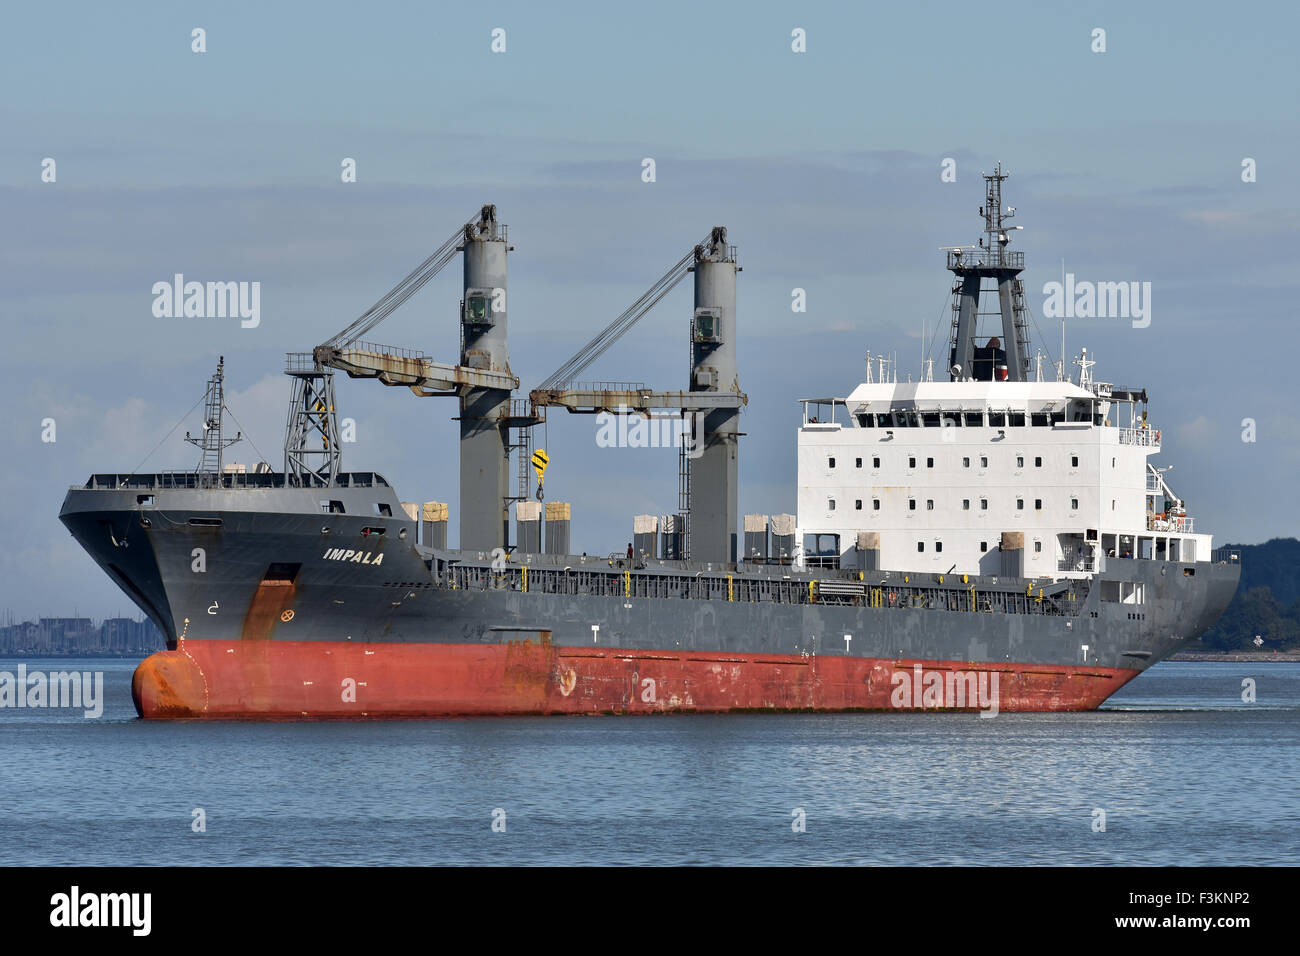 General Cargo Vessel Impala - Stock Image